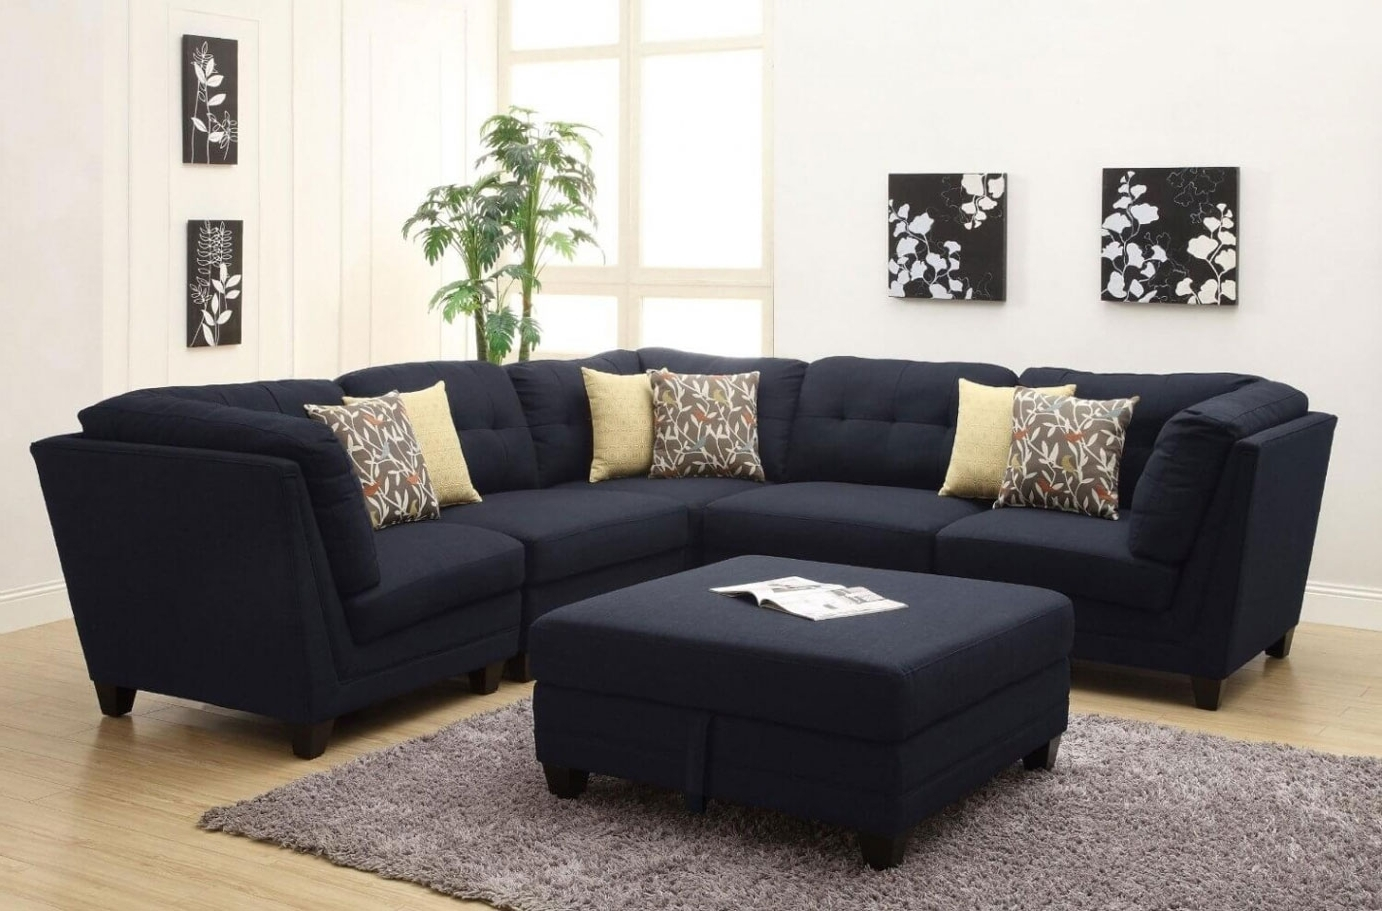 Famous Sectional Sofa: Most Recommended Sectional Sofas Under $1000 Inside Grande Prairie Ab Sectional Sofas (View 5 of 15)